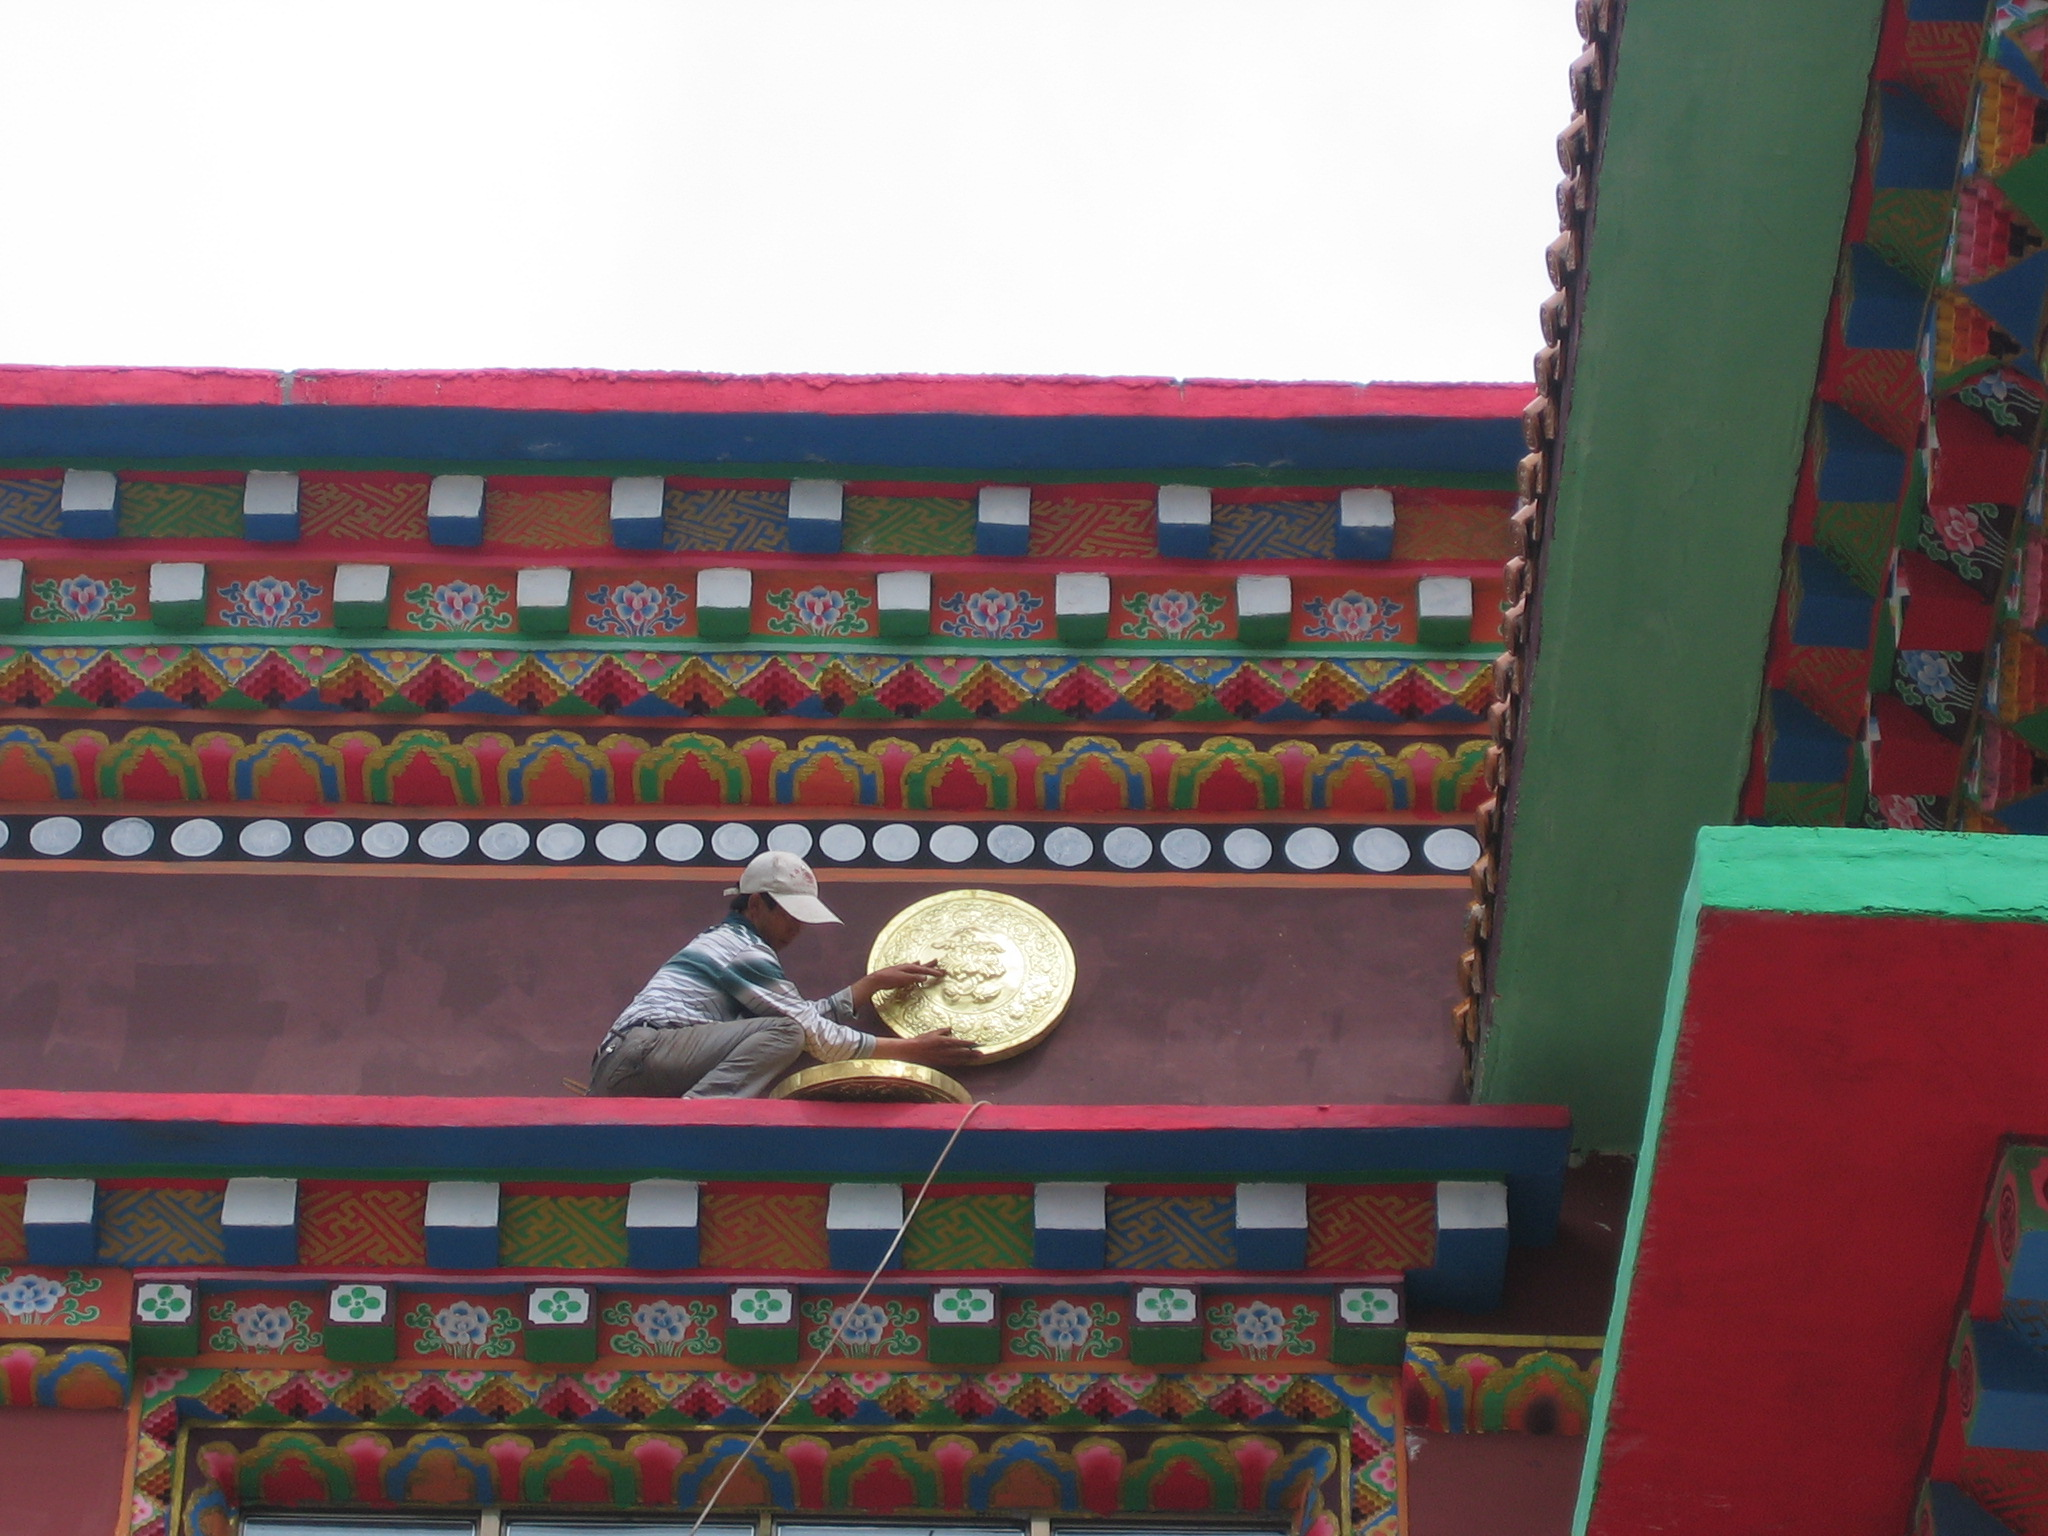 Worker mounts the first medallion while perched precariously on a ledge.